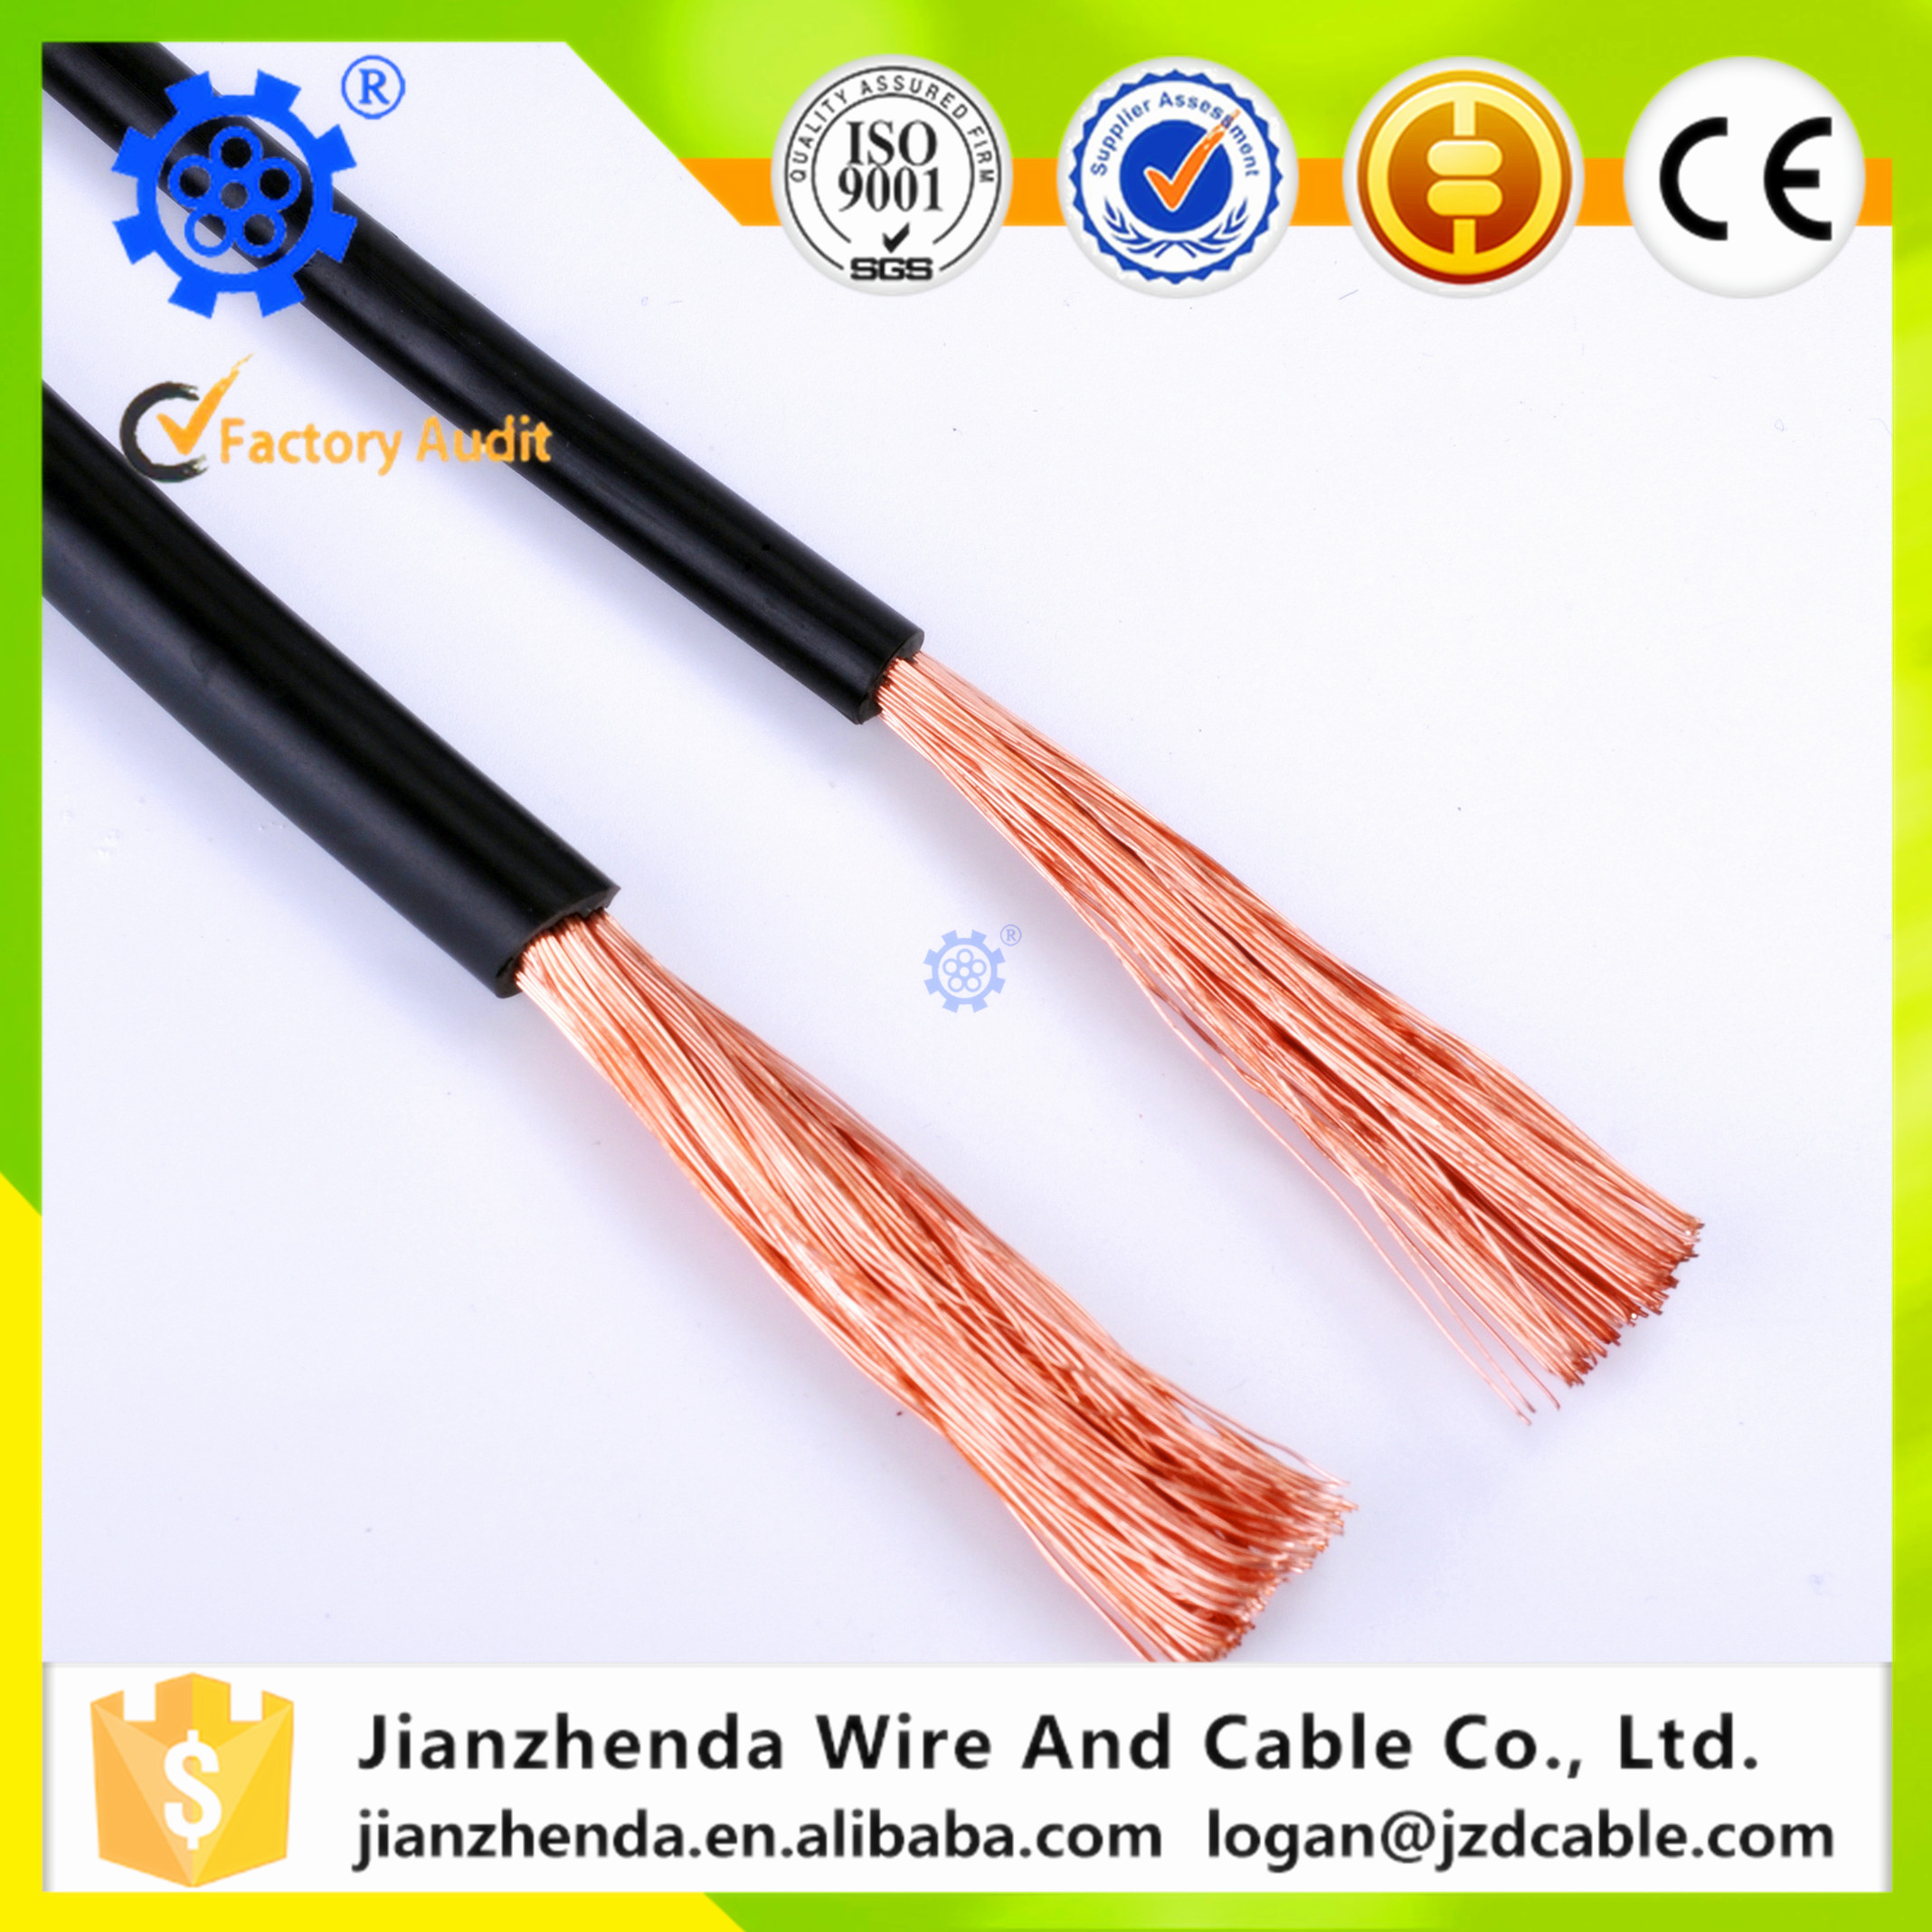 Indoor Wire, Indoor Wire Suppliers and Manufacturers at Alibaba.com